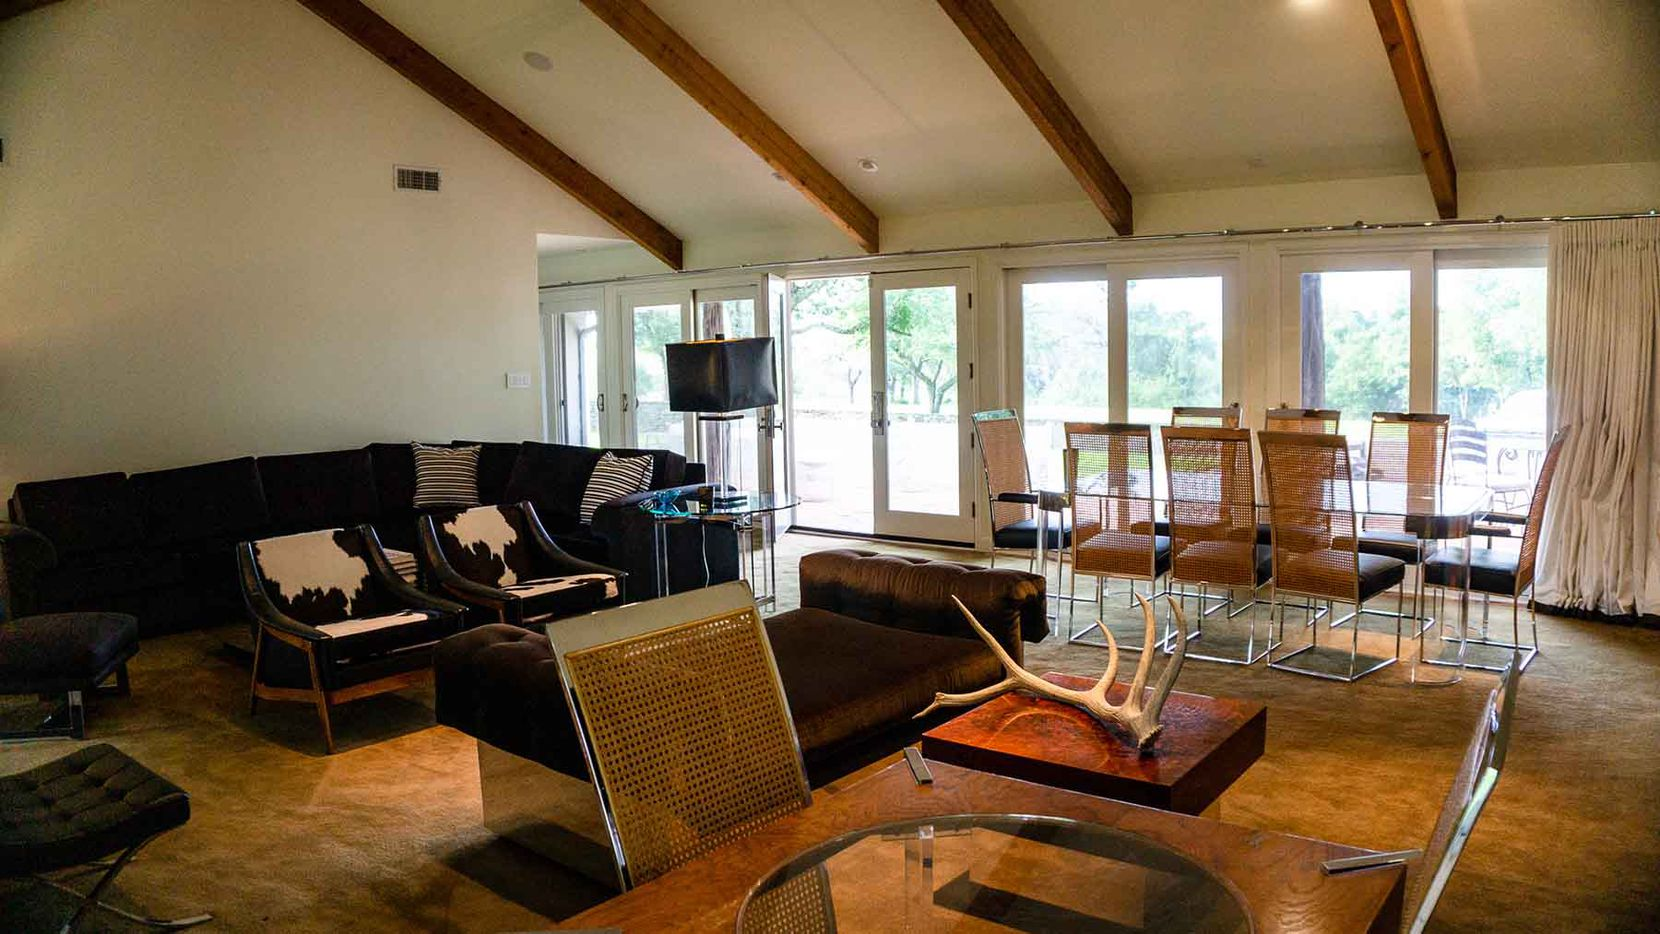 The River Bluff Ranch includes an owner's lodge and smaller homes as well.